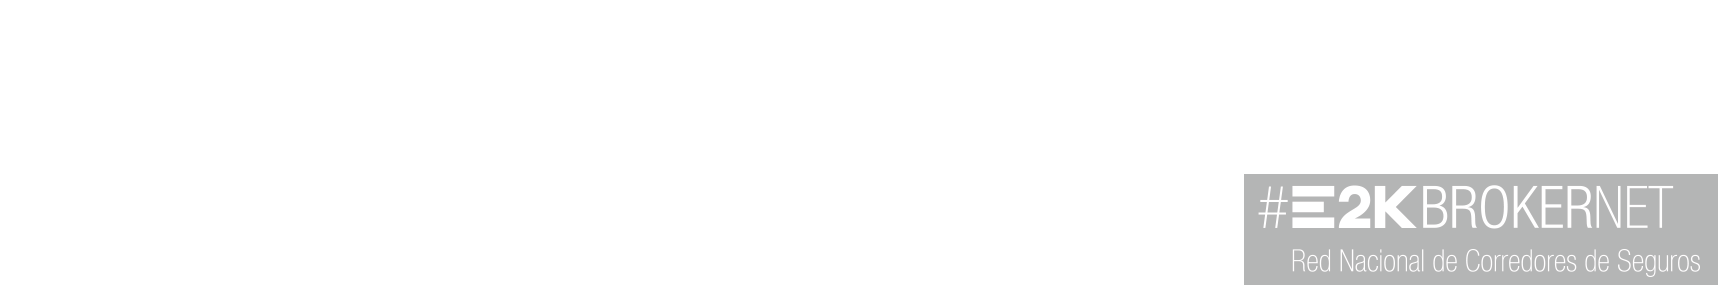 Key Interbrokers